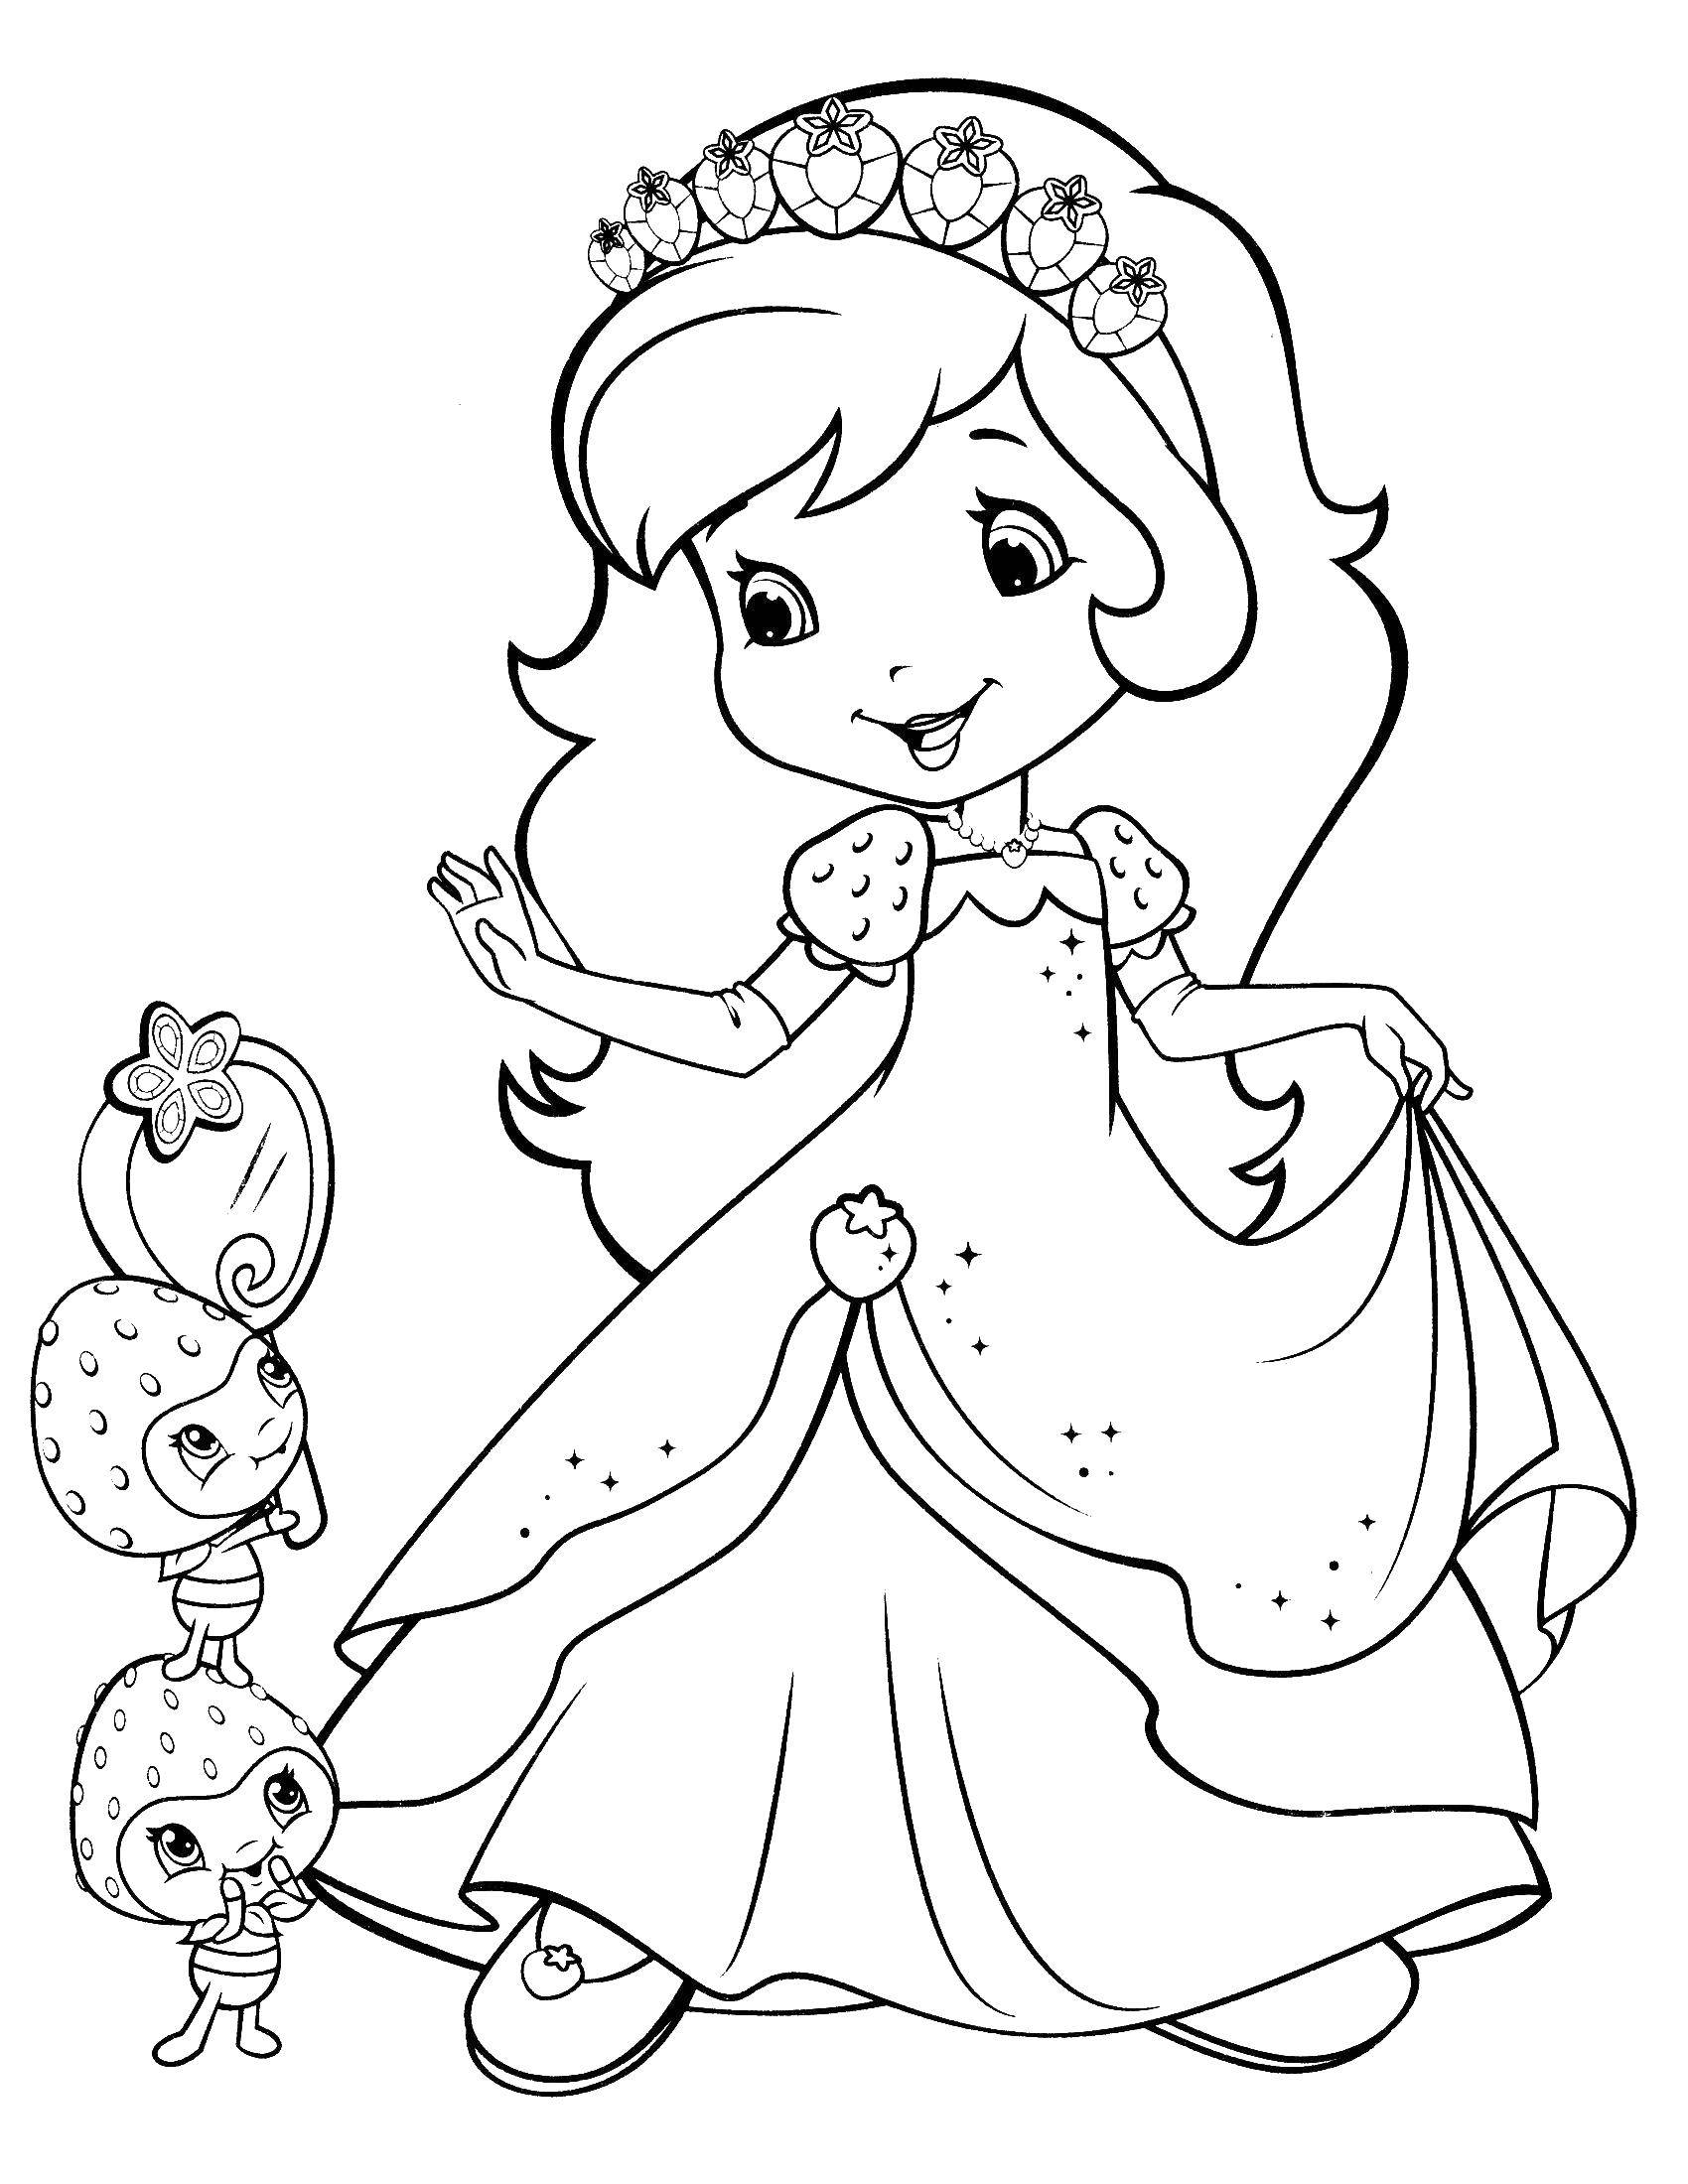 Coloring Strawberry Charlotte tries on a dress. Category cartoons. Tags:  Charlotte, strawberry.